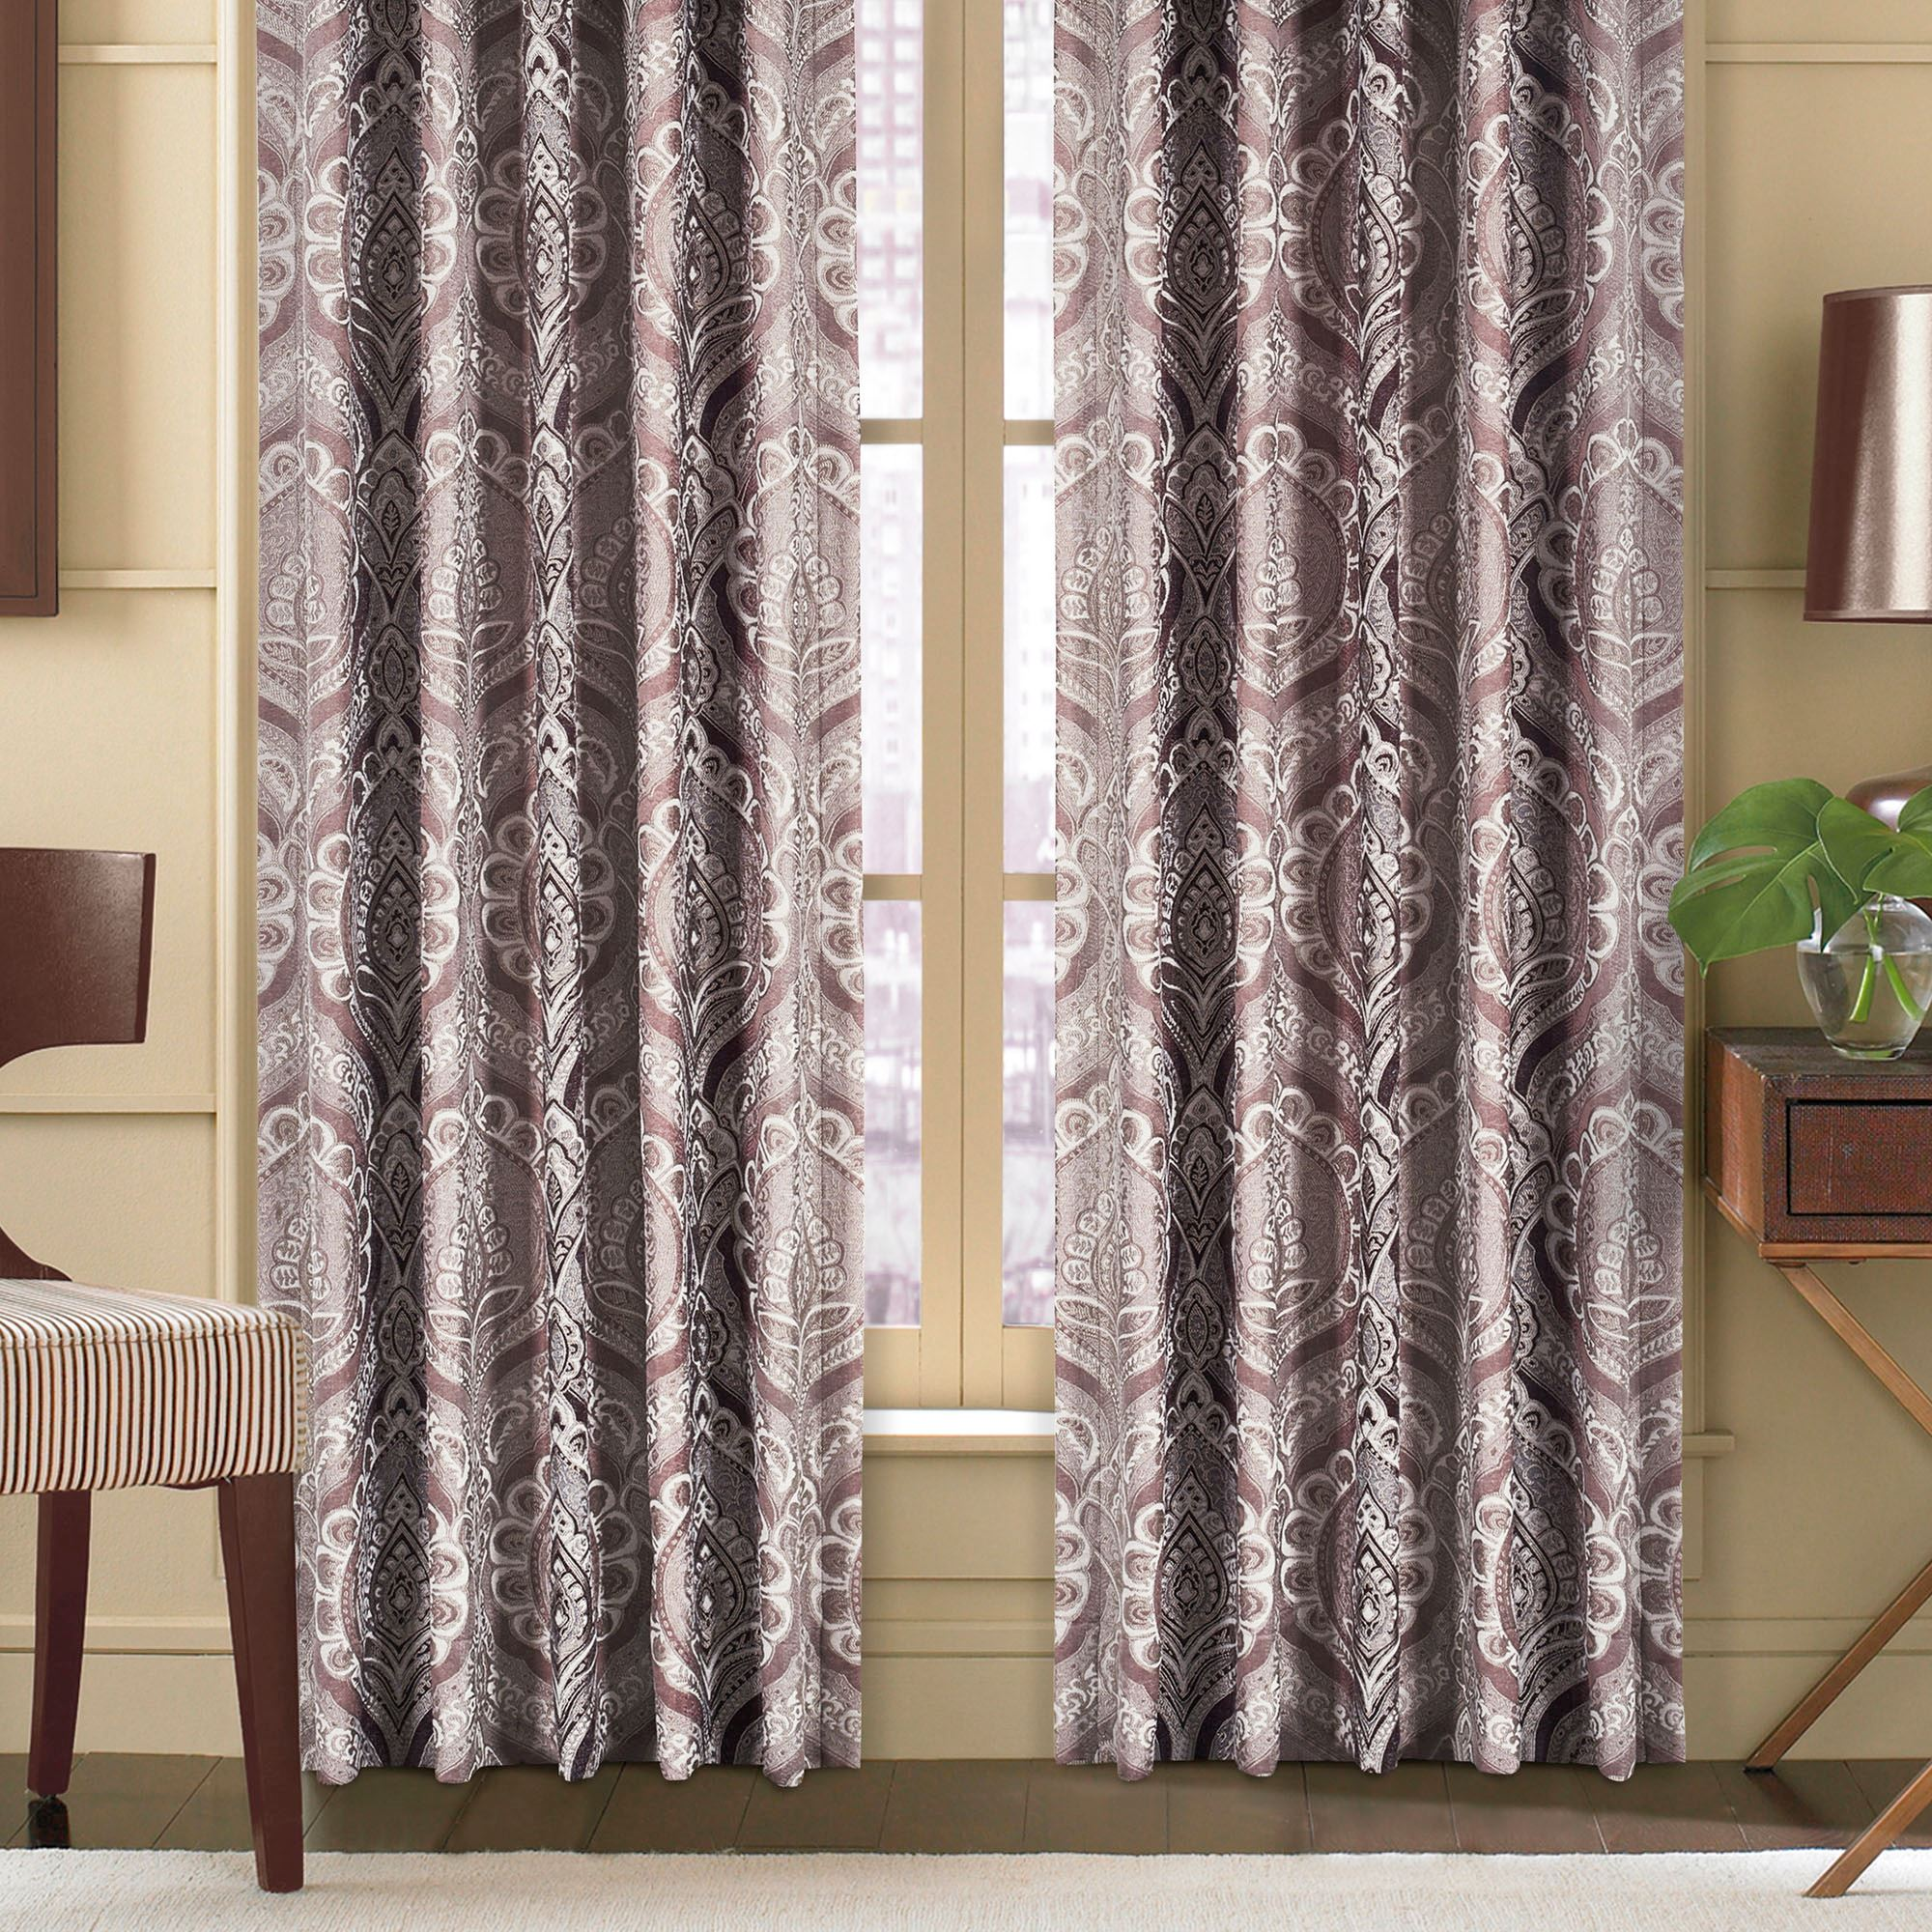 j set york light bedding athena p queen new taupe by comforter medallion curtains